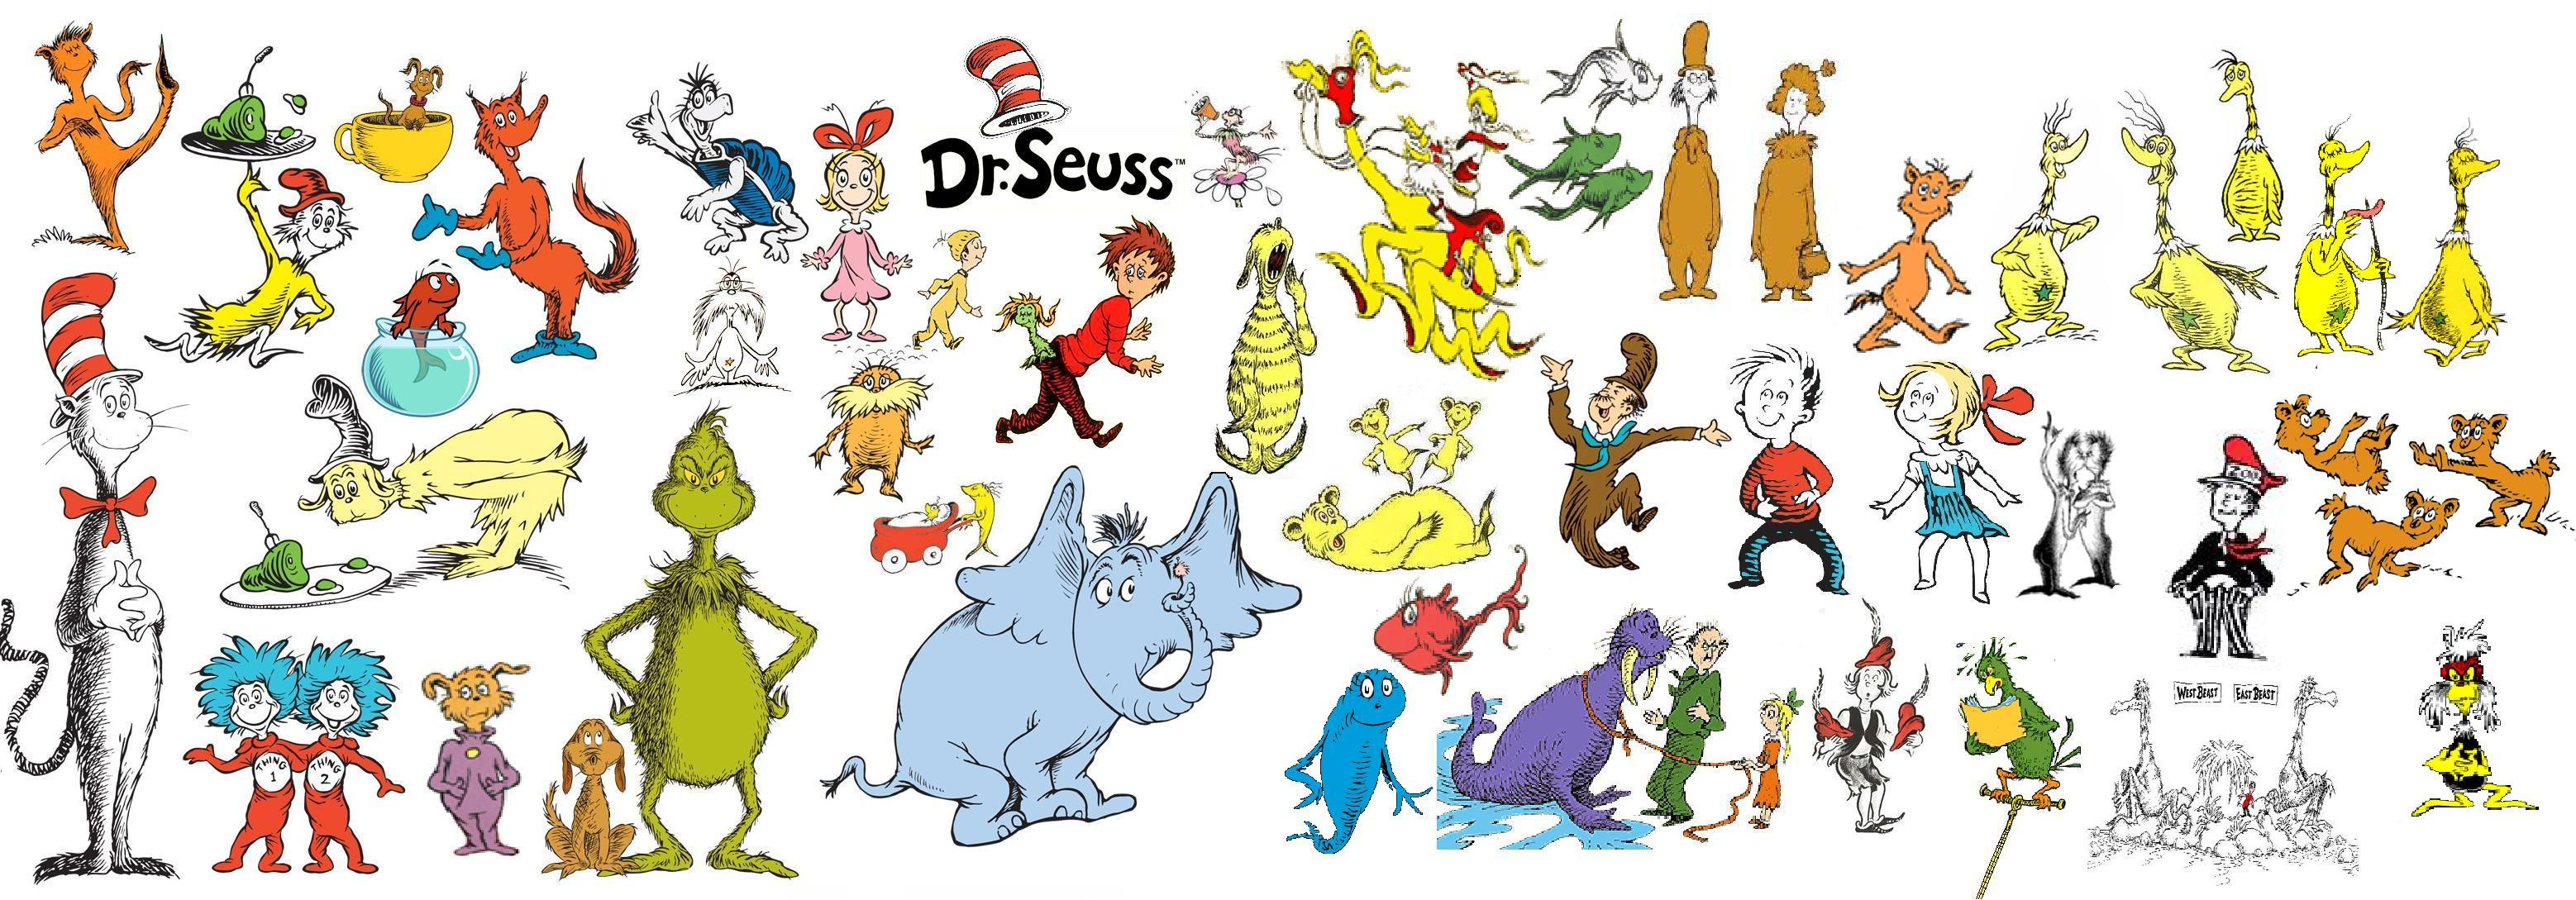 Dr Seuss Character List Clipart Free Cli-Dr Seuss Character List Clipart Free Clip Art Images-9